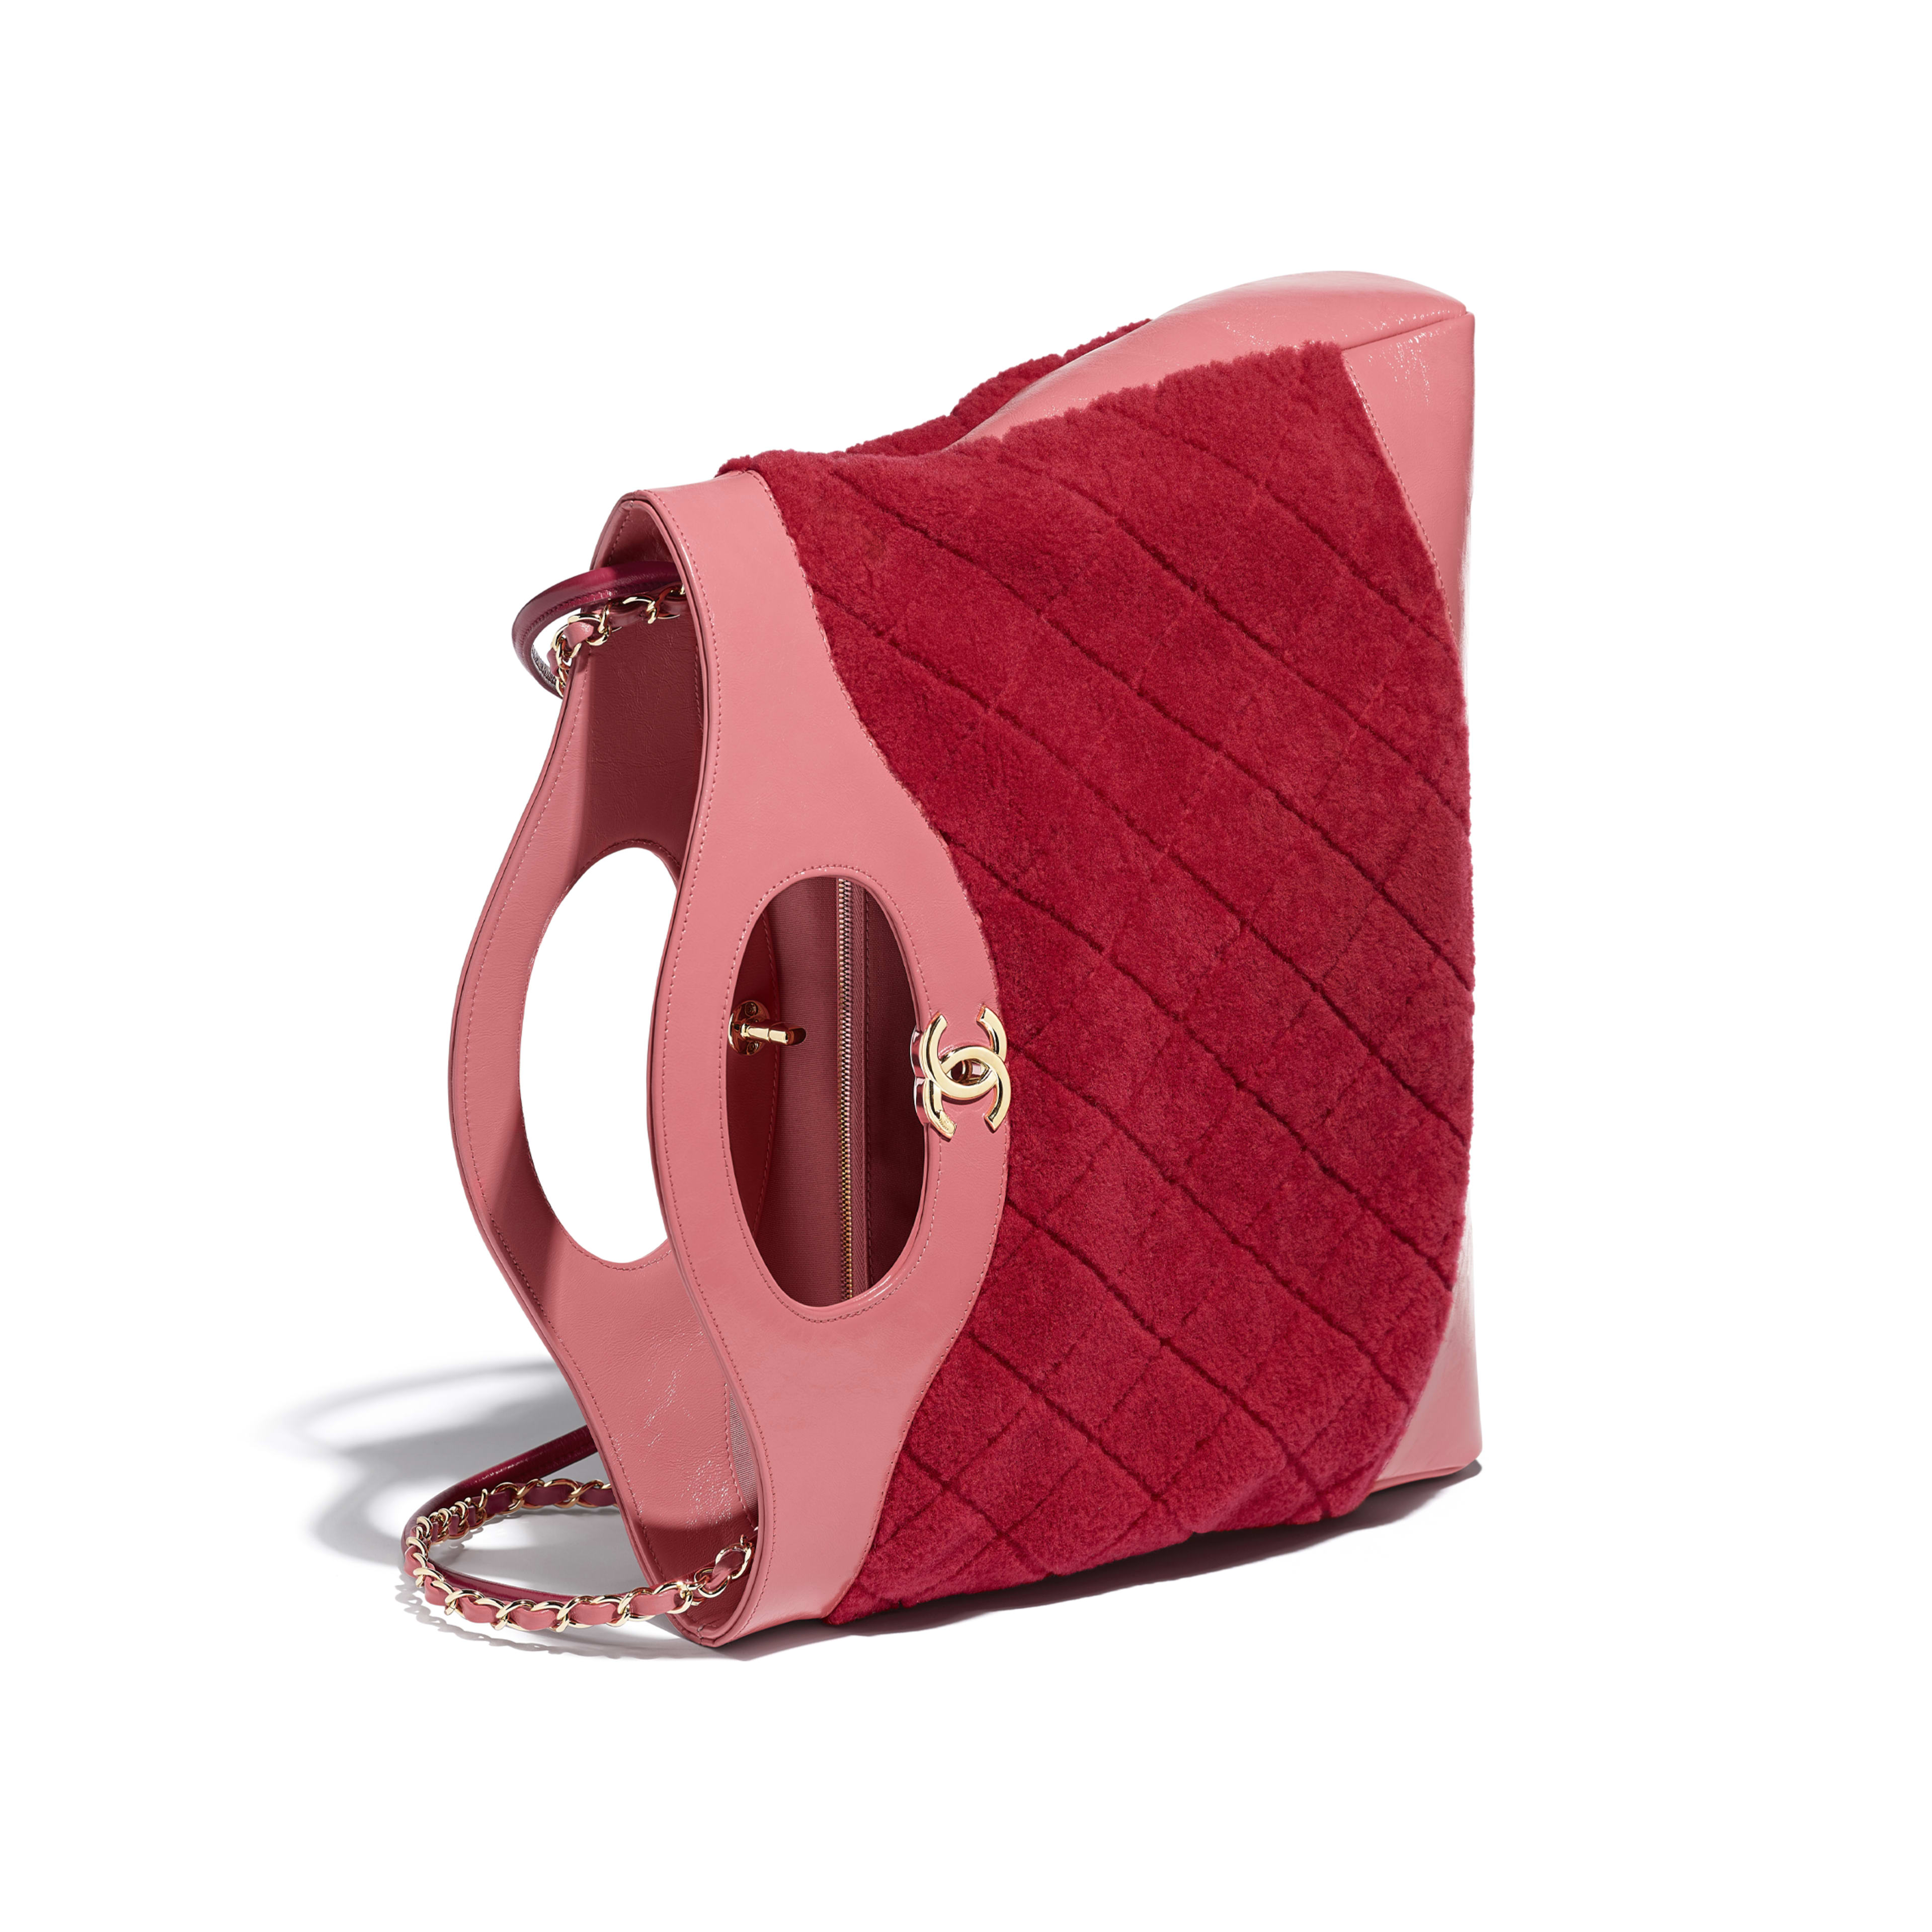 CHANEL 31 Shopping Bag - Red & Pink - Shearling Sheepskin, Calfskin & Gold-Tone Metal - Other view - see full sized version